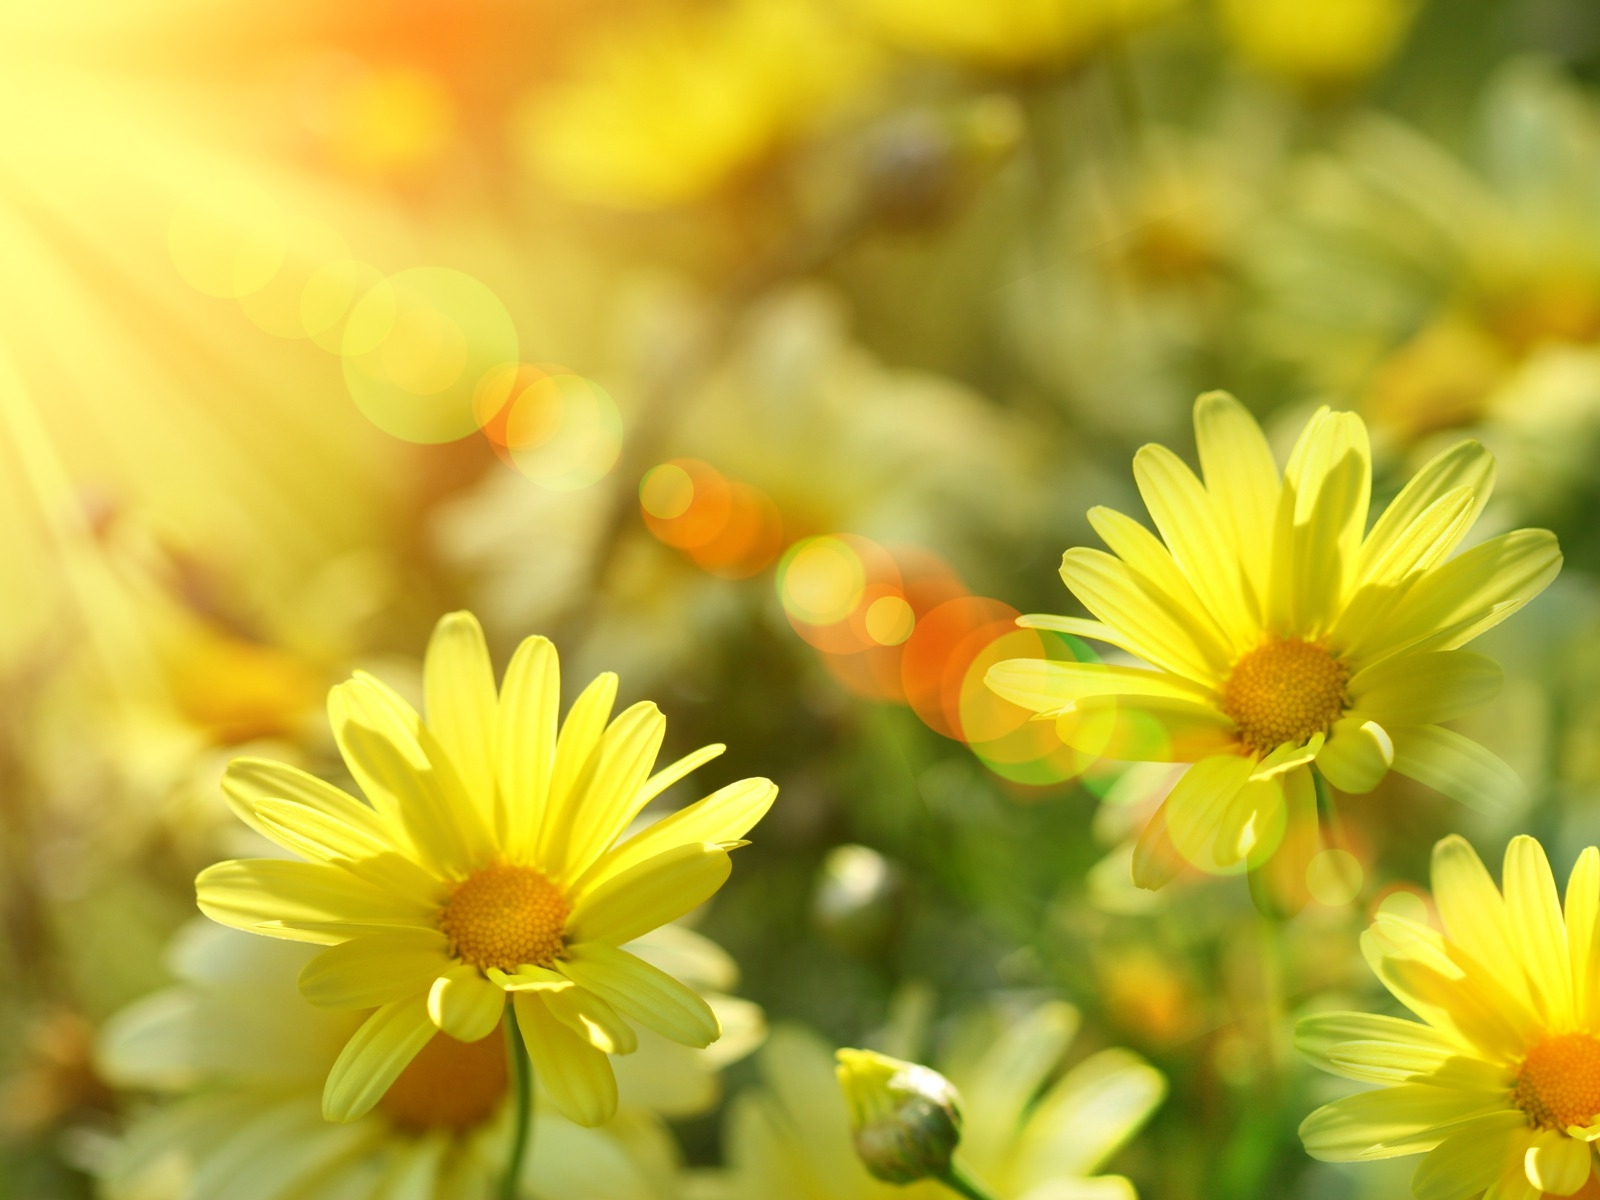 sunshine wallpaper cute flowers